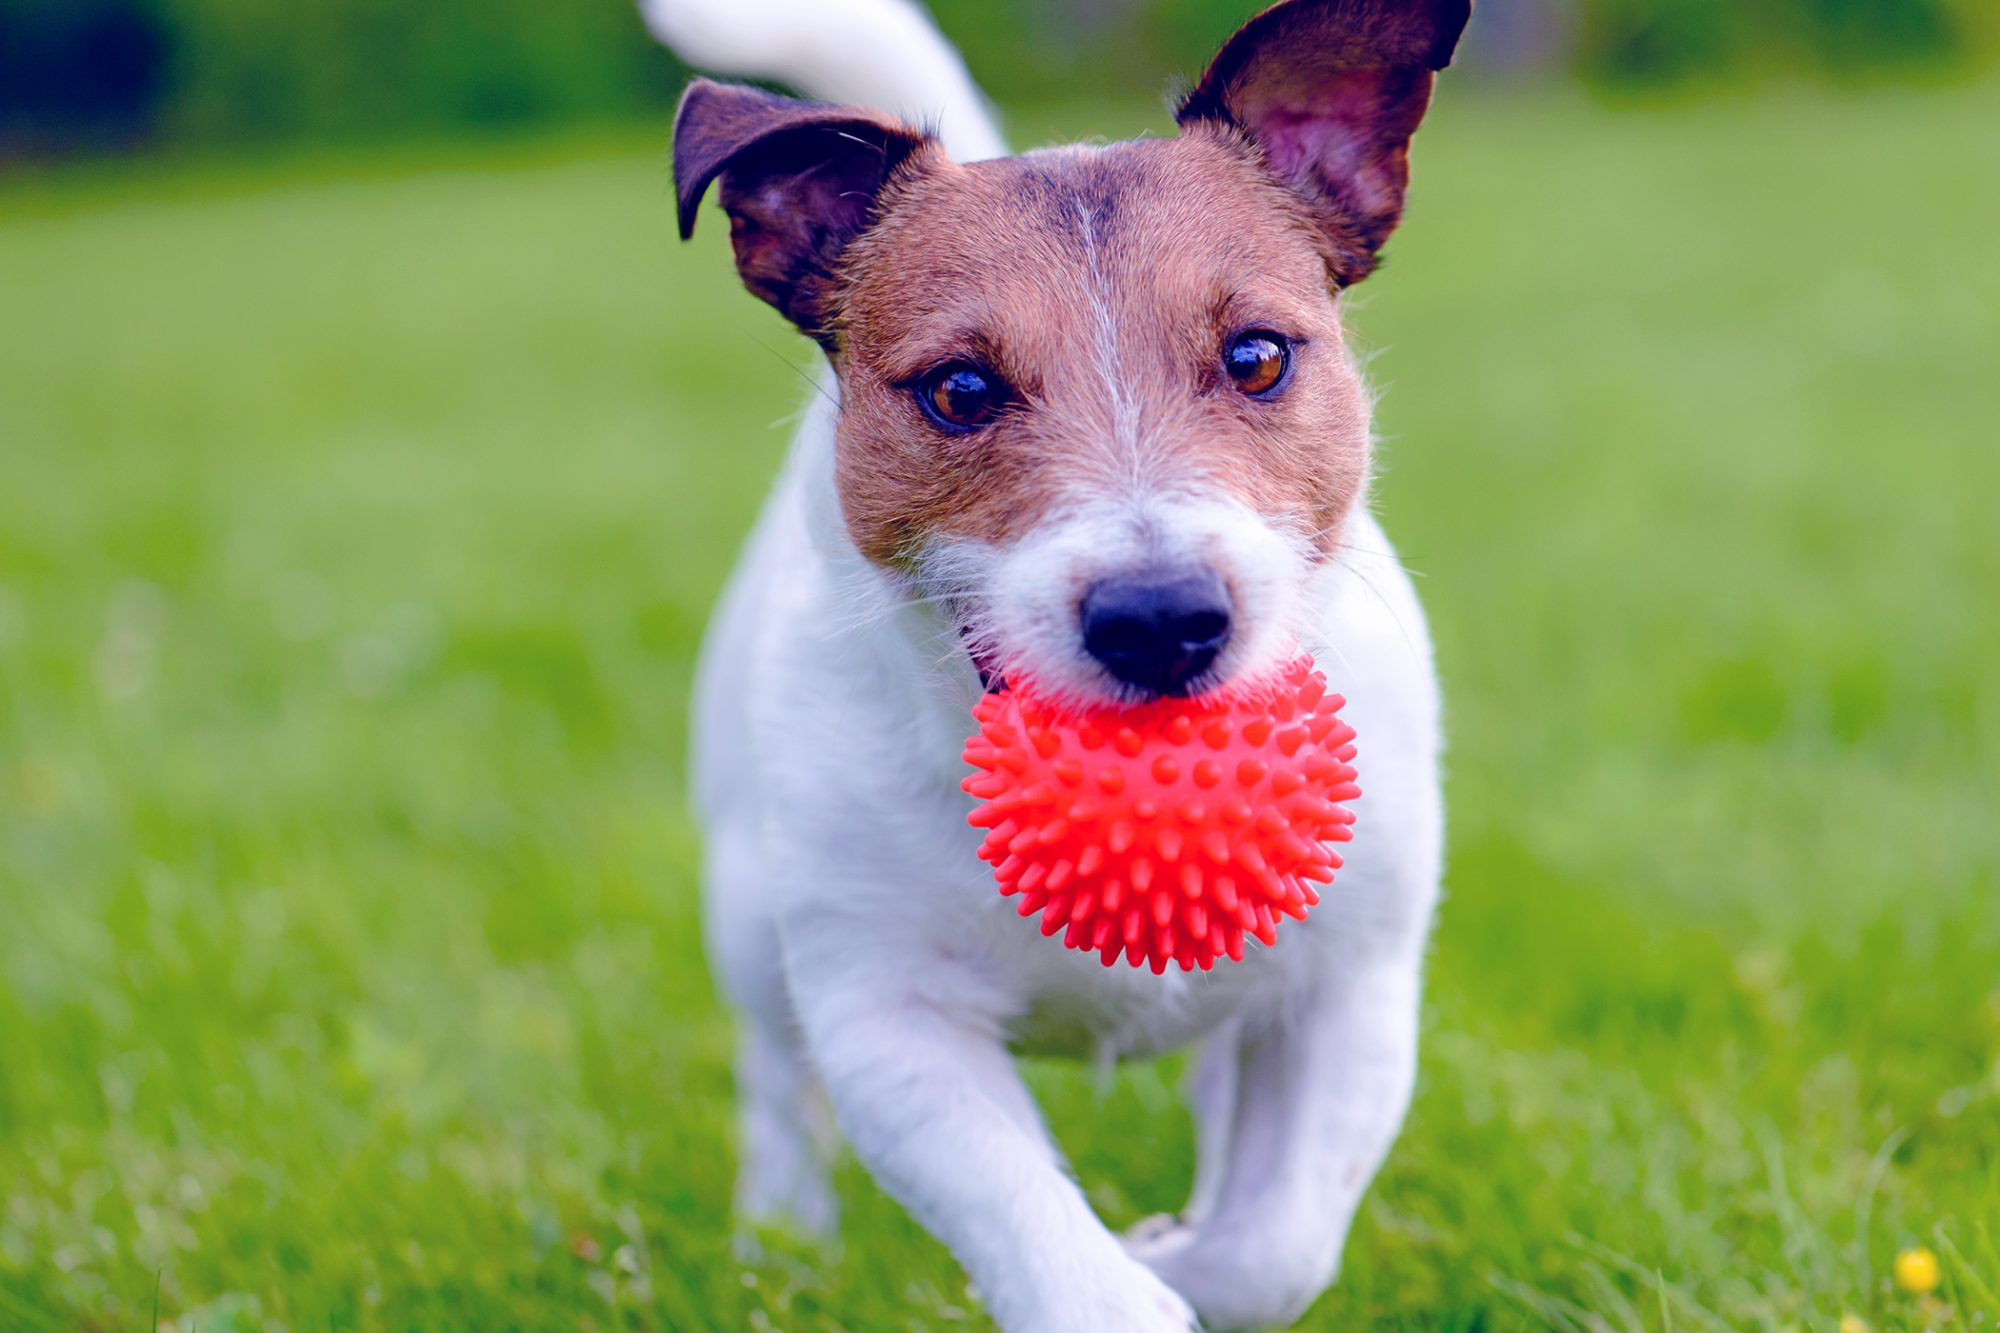 Jack Russell Terrier running with read ball